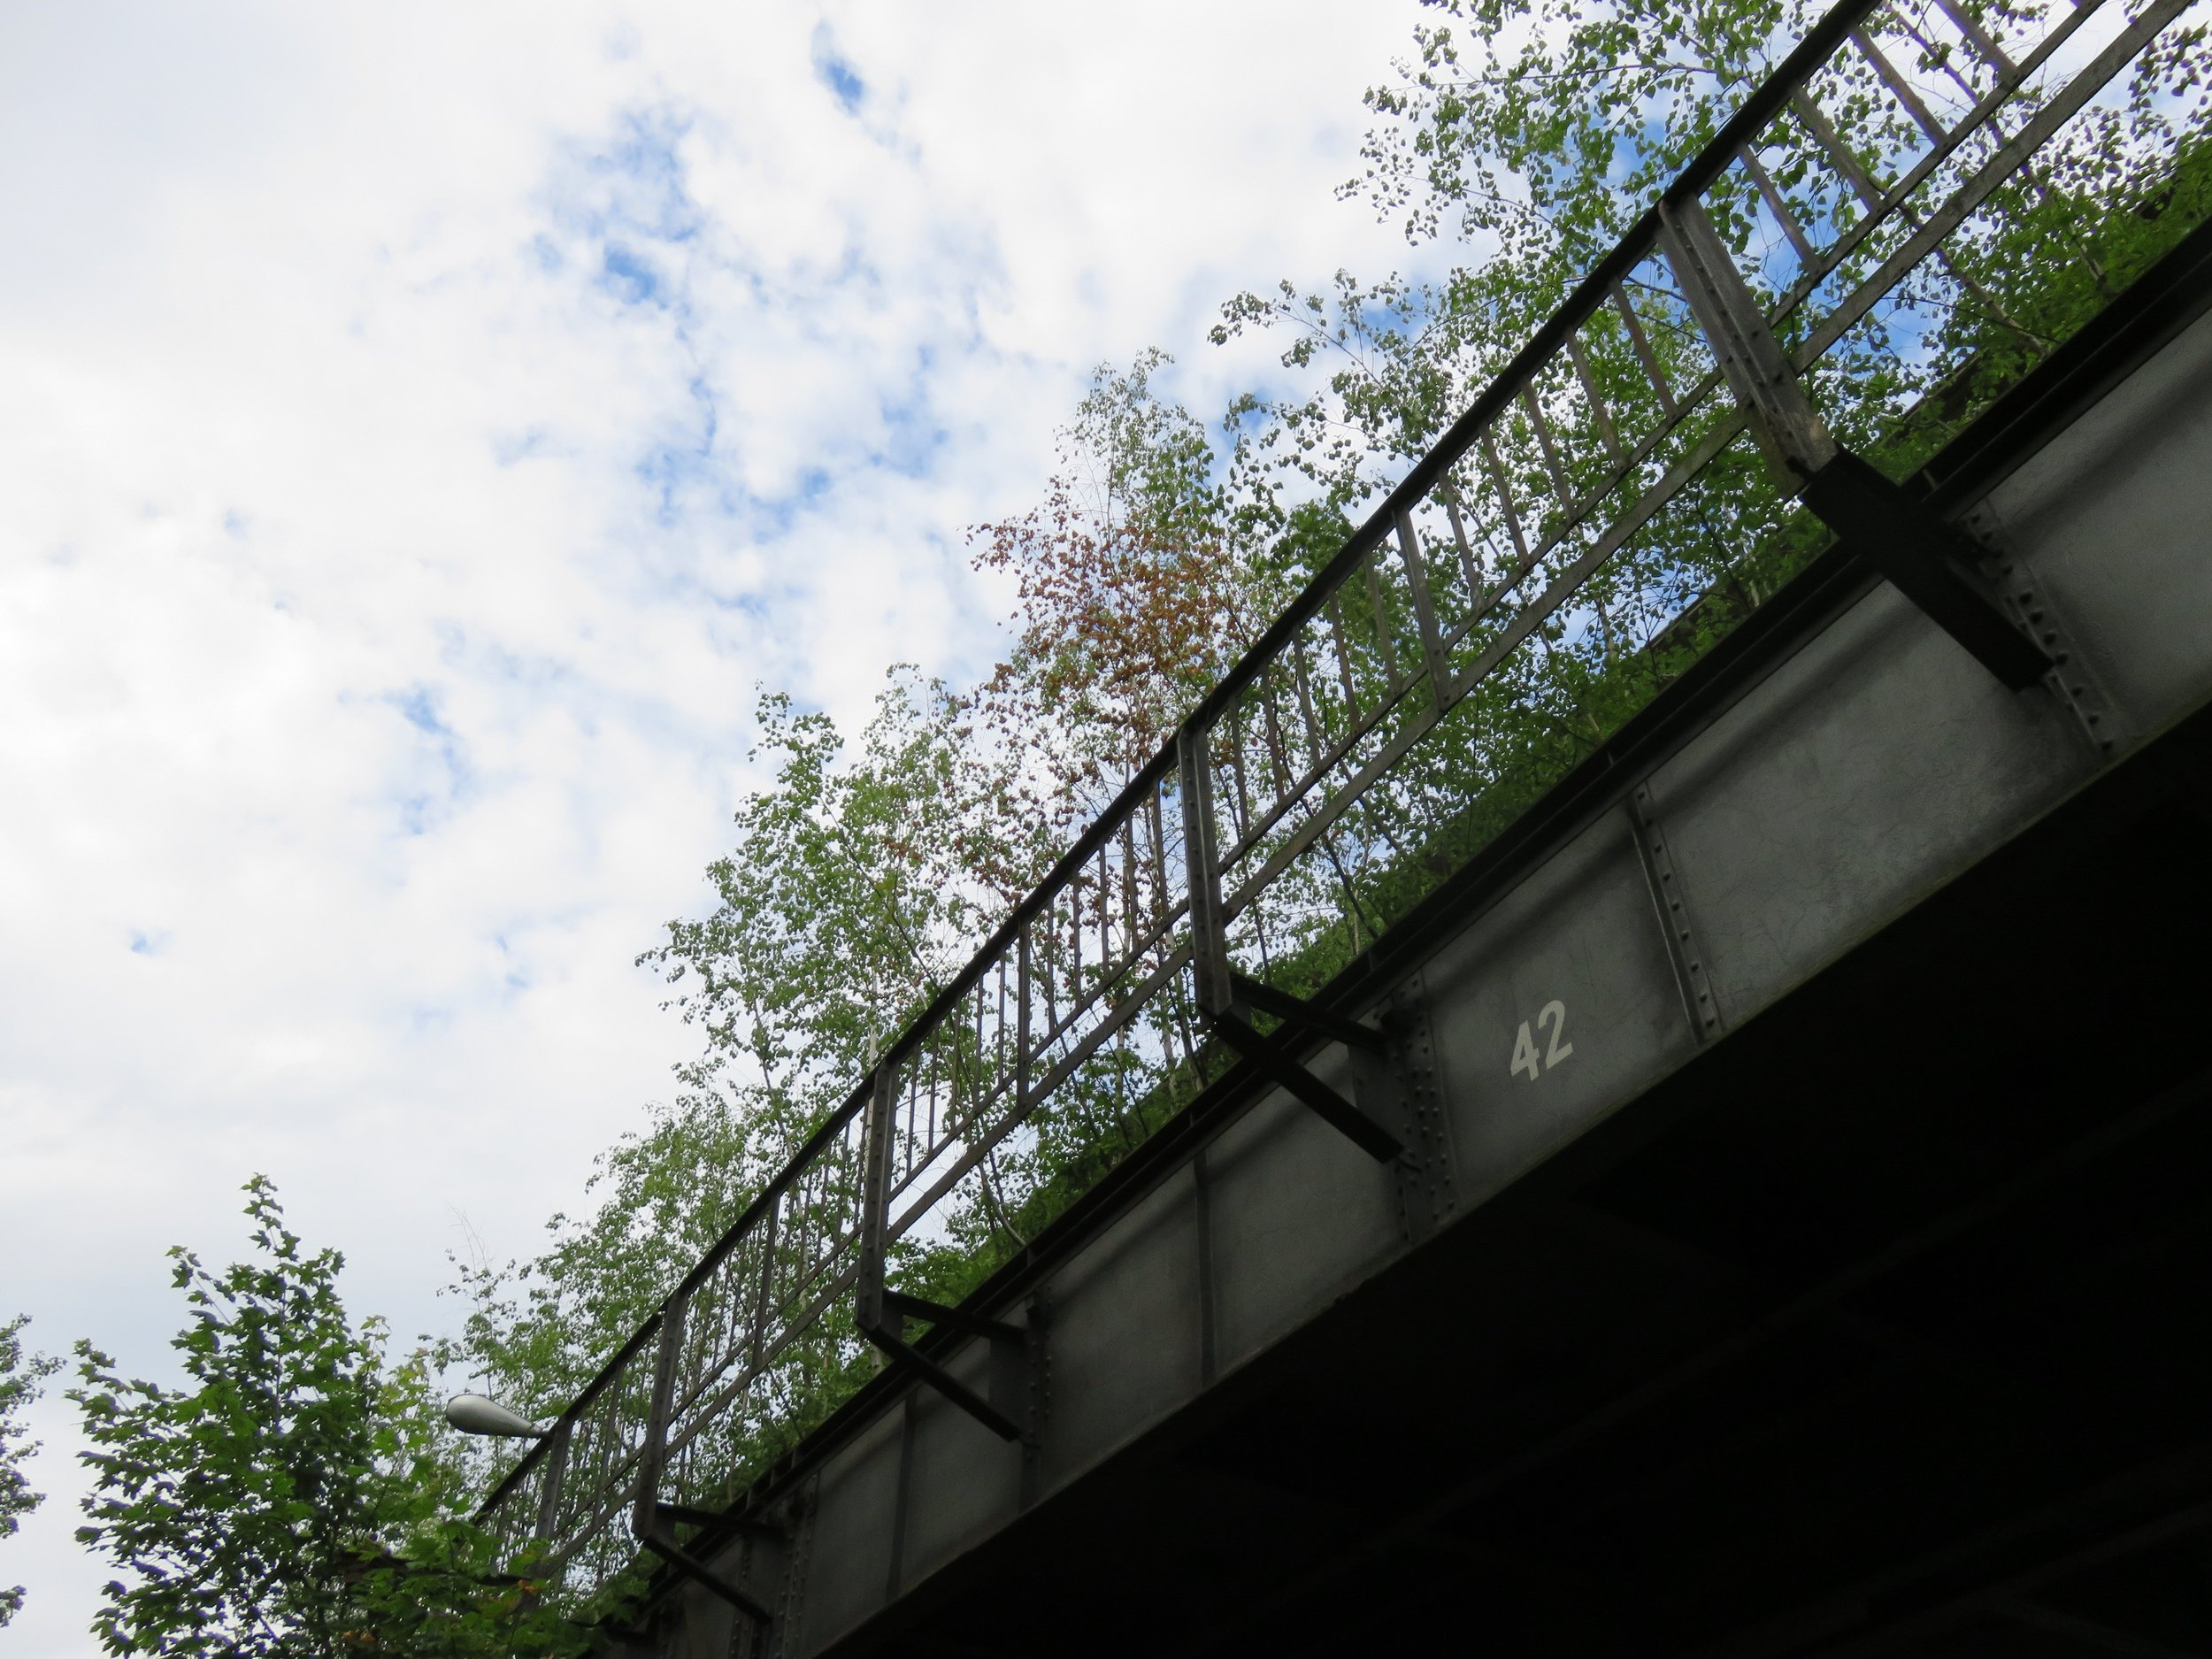 Trees growing on the abandoned tracks near the former Wernerwerk station, visible from street level.